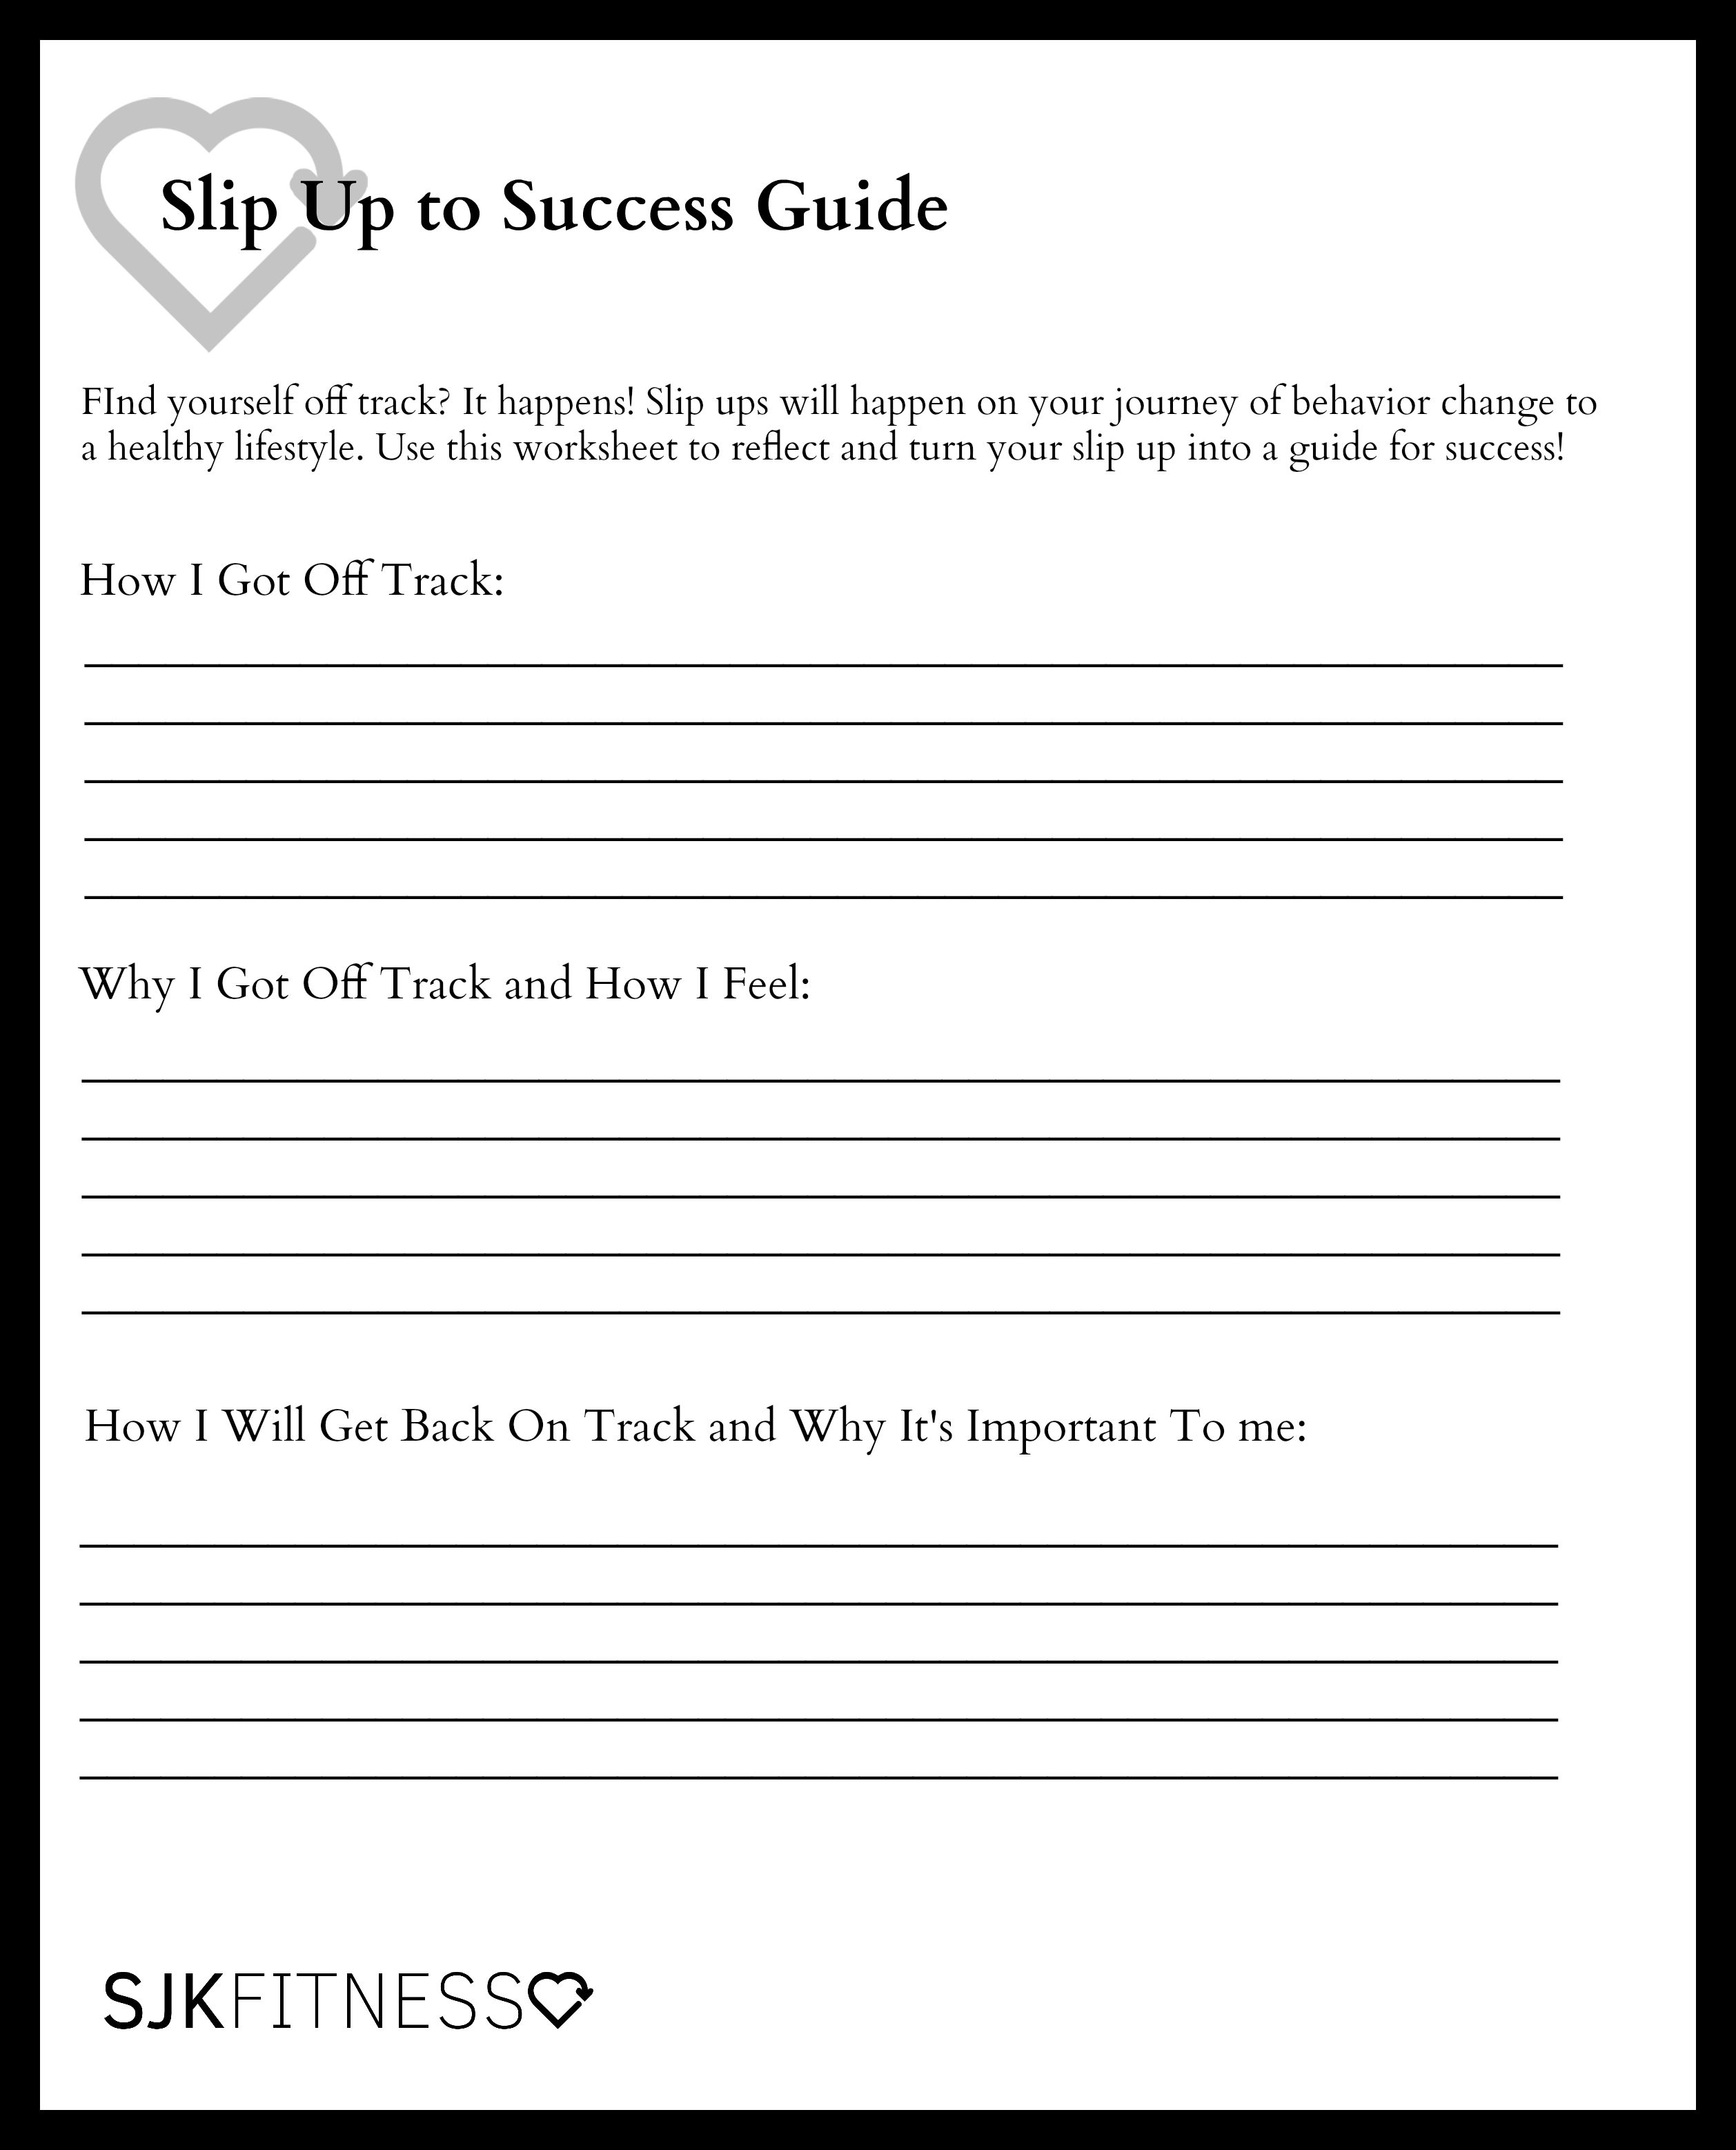 Slip Up to Success Guide